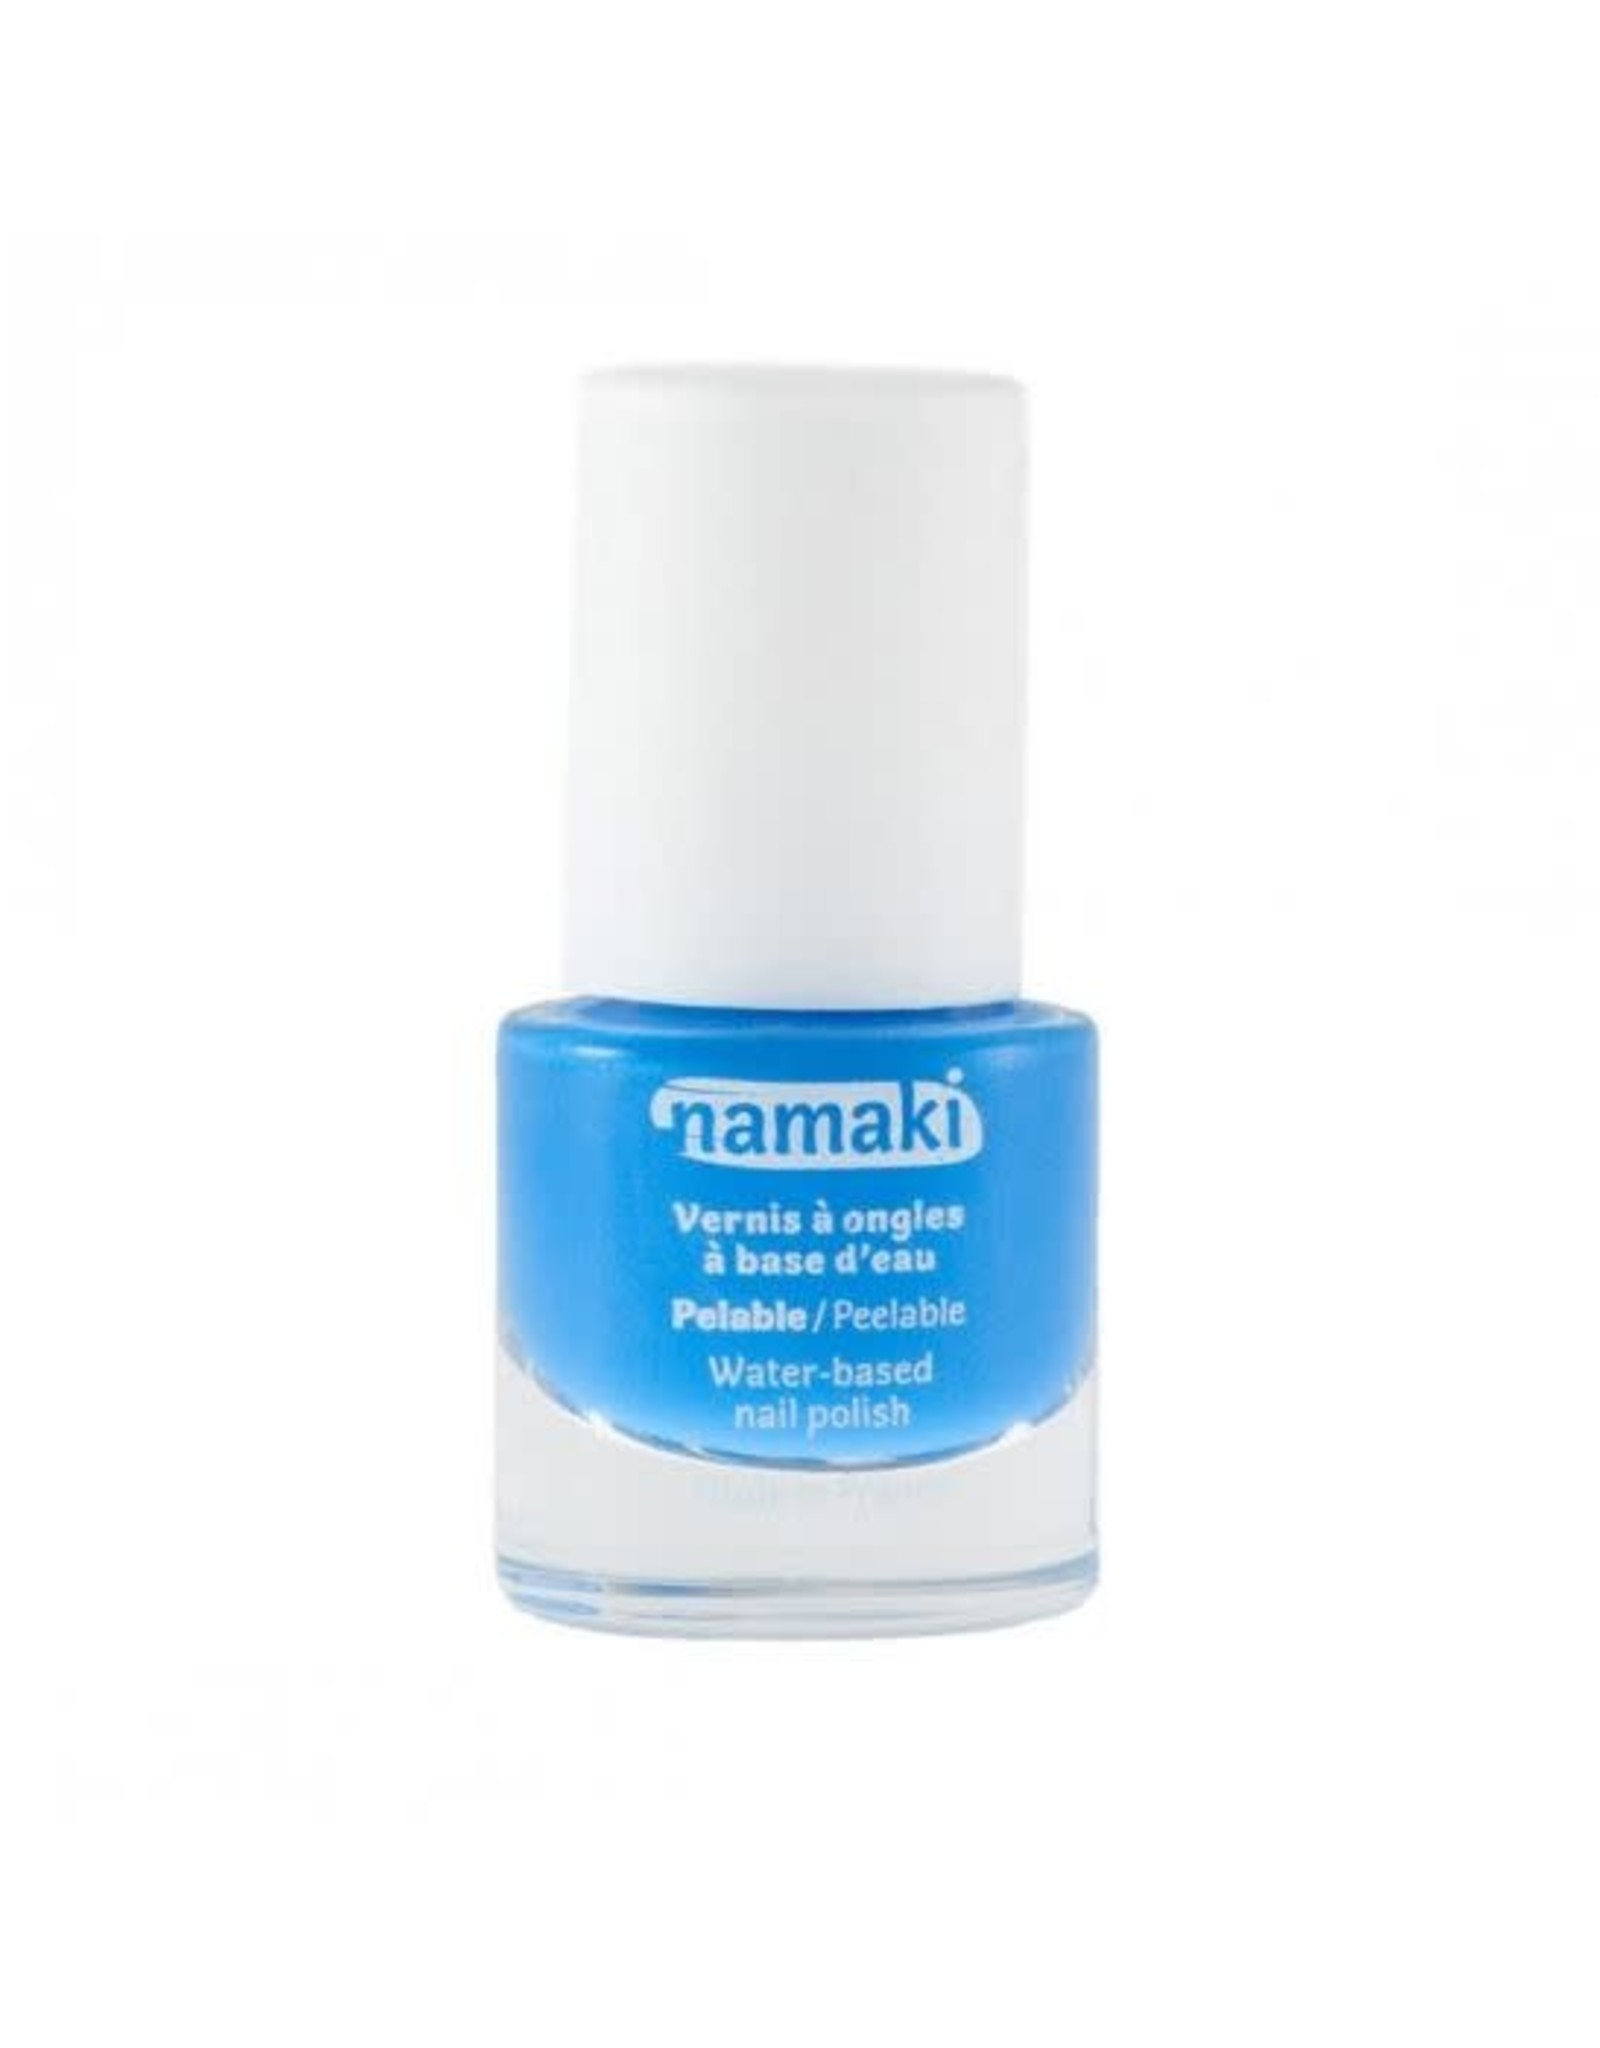 Namaki Kinder Nagellak - Light Blue 08